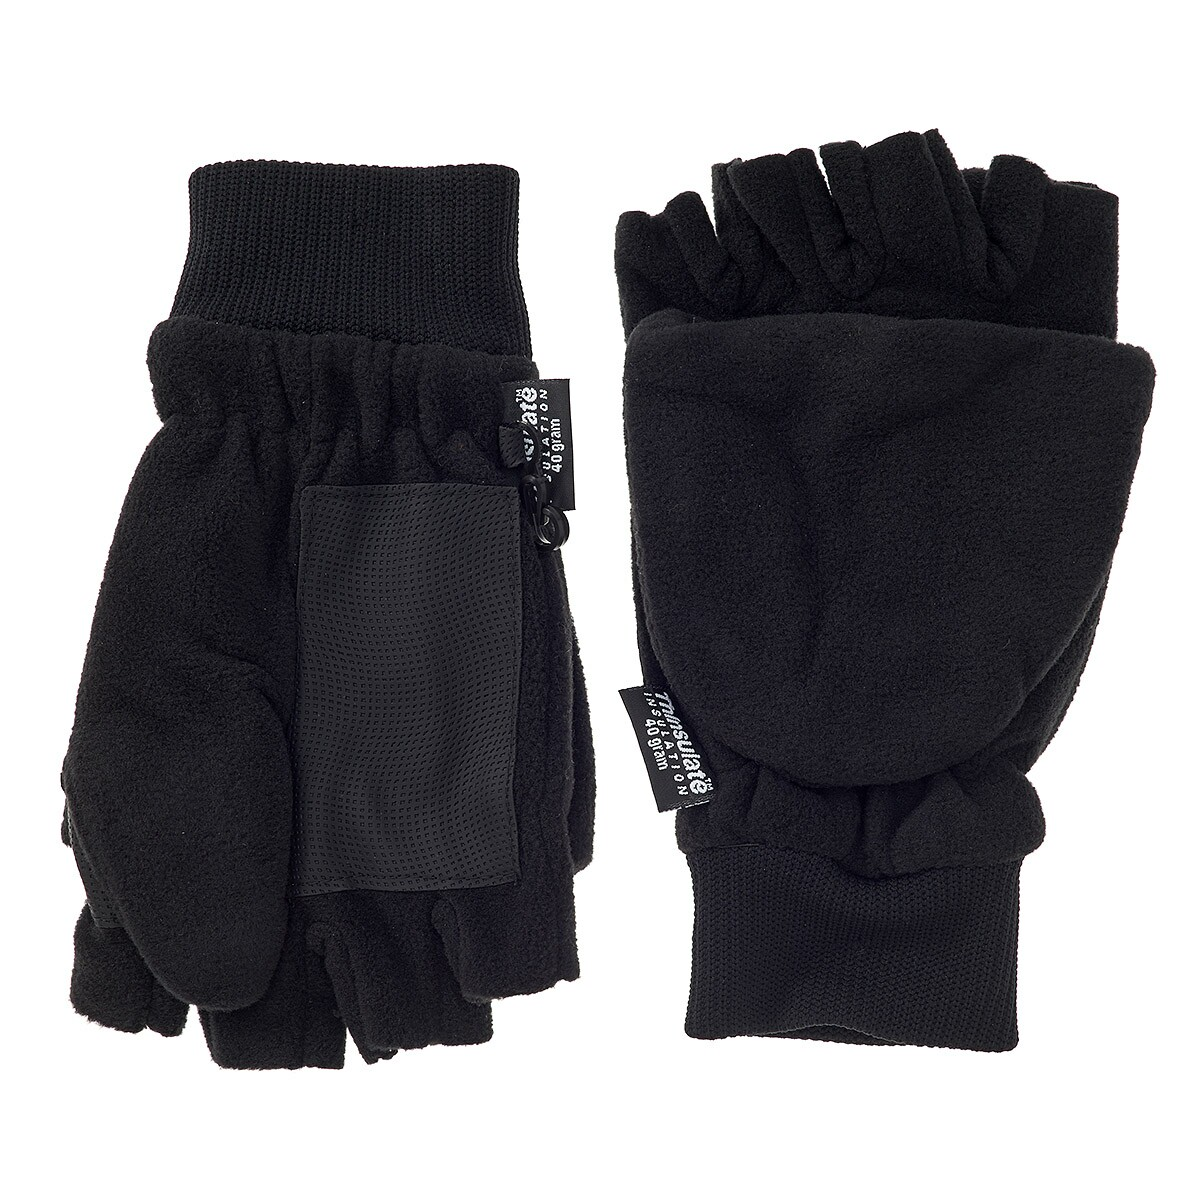 Shop Original Penguin Men's Convertible Mittens online at free-cabinetfile-downloaded.ga Change up your look or adjust the coverage to suit the conditions in these convertible mittens from Original Penguin.